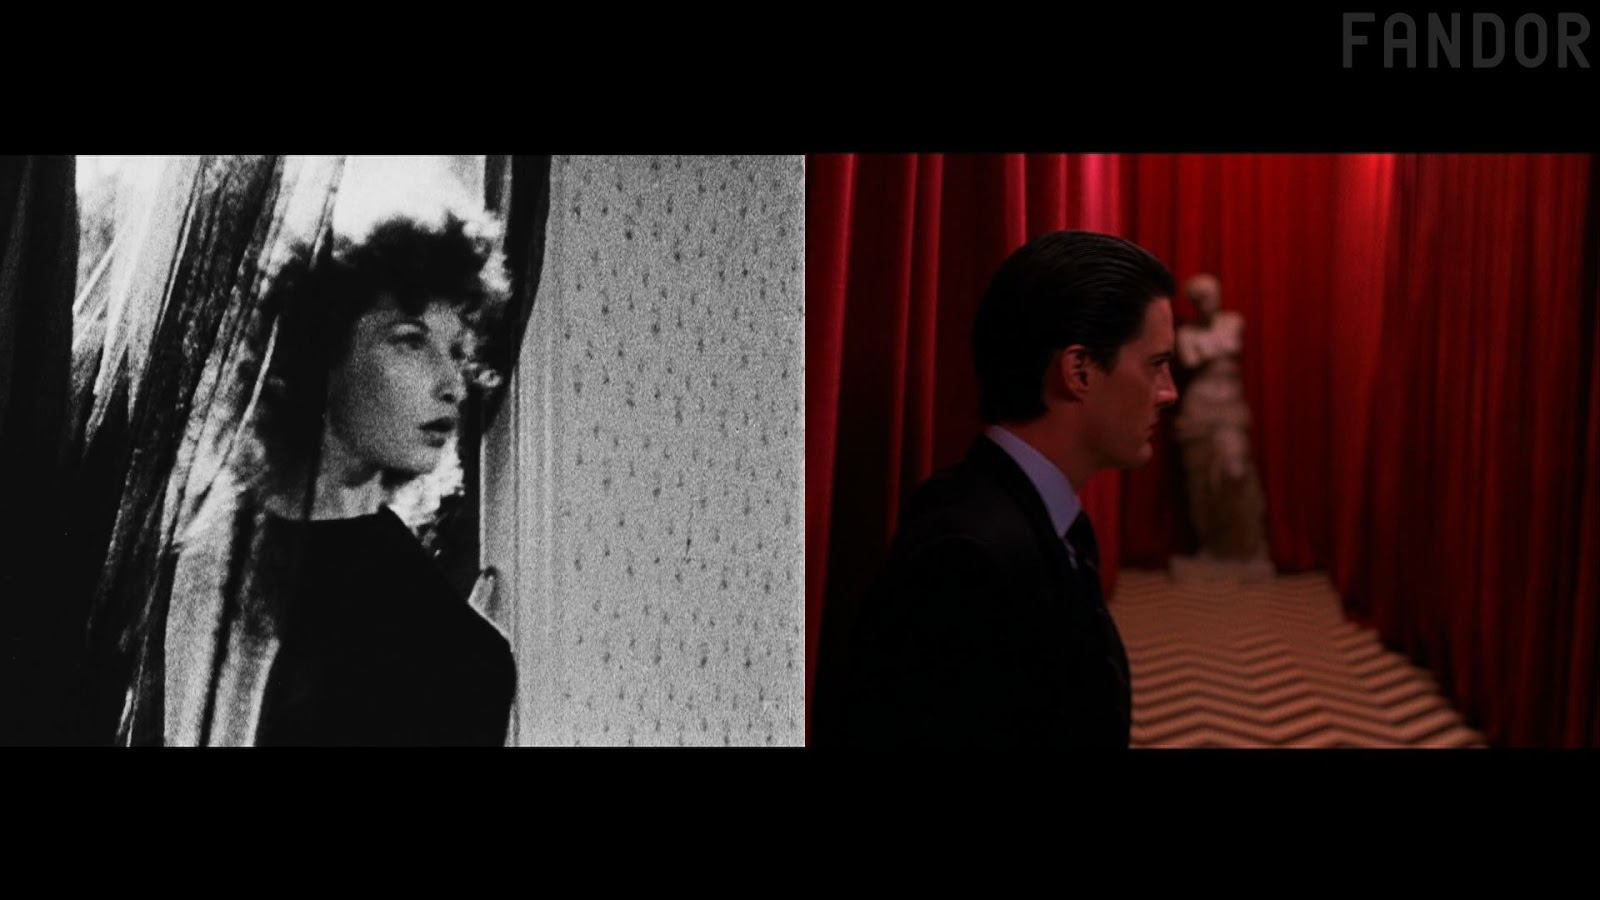 Lost in the movies formerly the dancing image twin peaks david non narrated examination of trauma and repression in david lynchs first six features and twin peaks 2 meshes of lynch publicscrutiny Choice Image